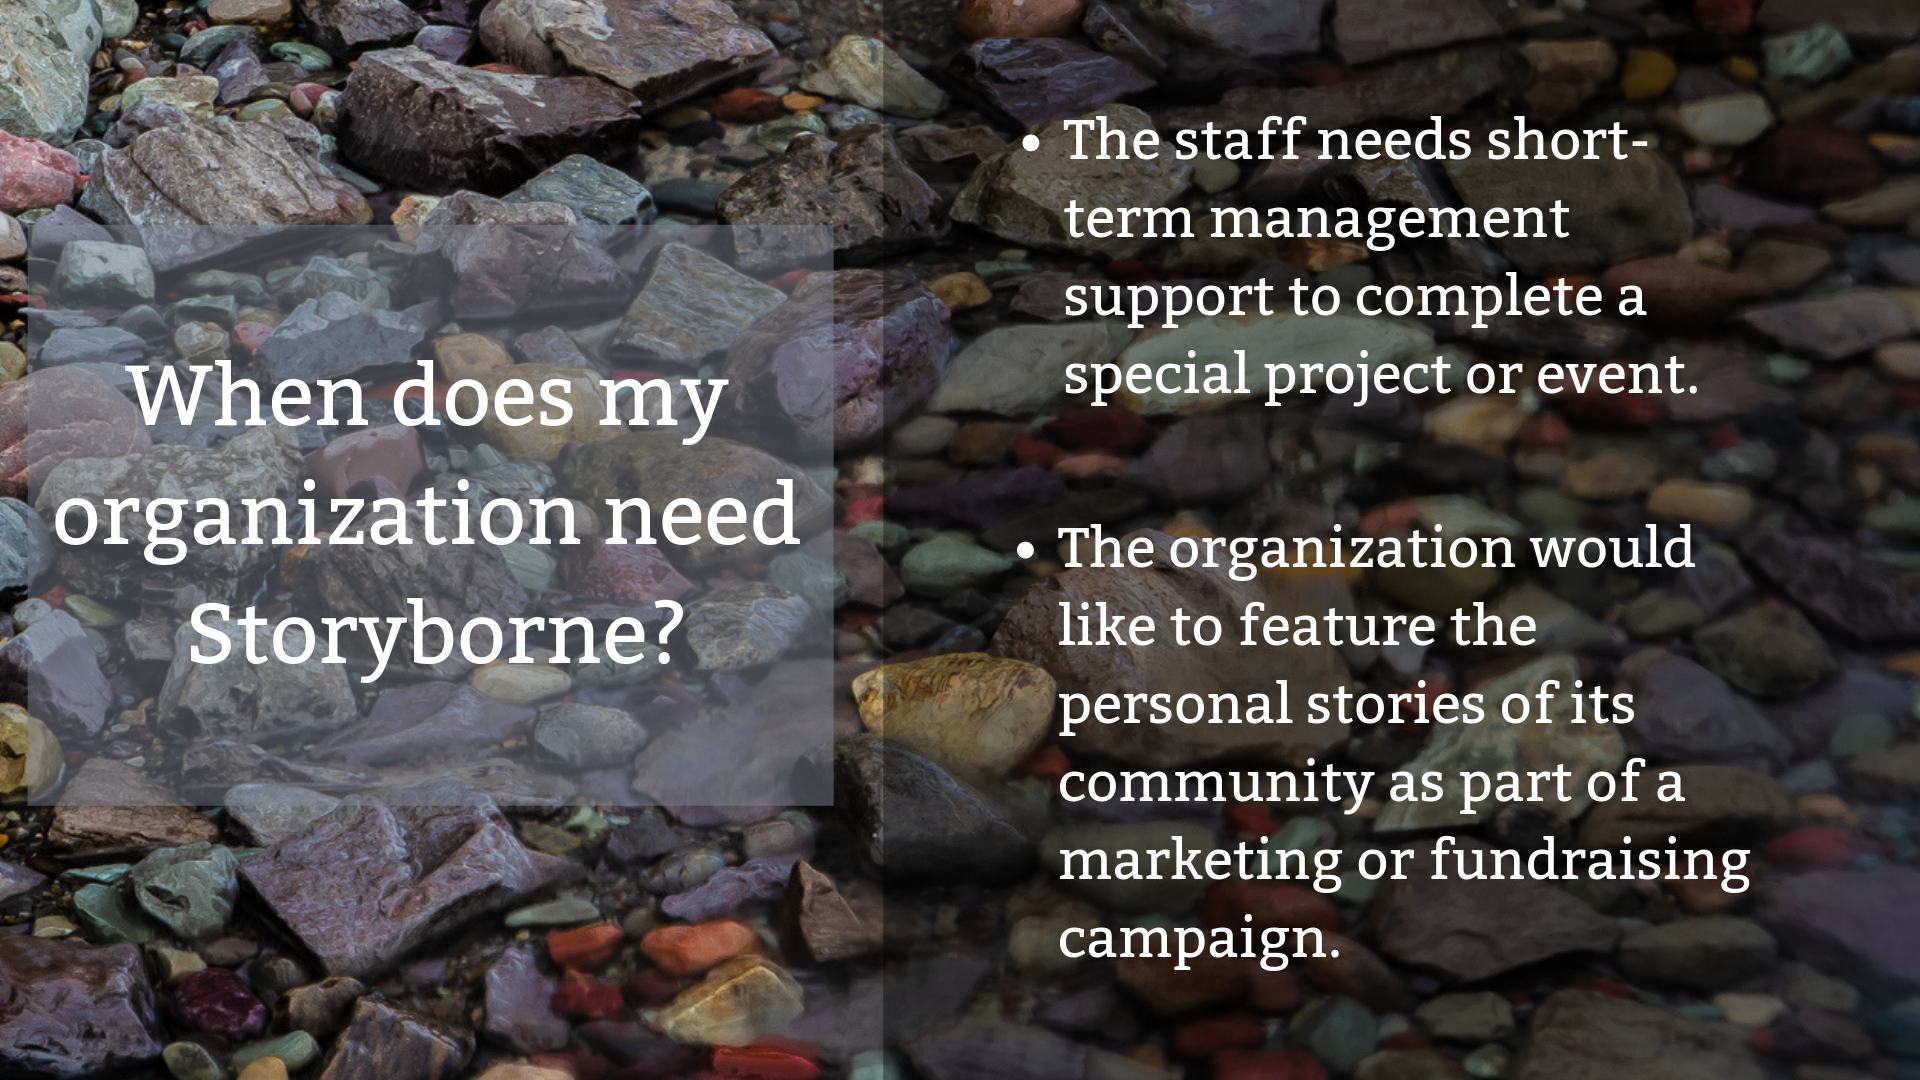 Bonnie-Obremski-Storyborne-Marketing-And-Project-Management-Services-When-Do-I-Need.PNG